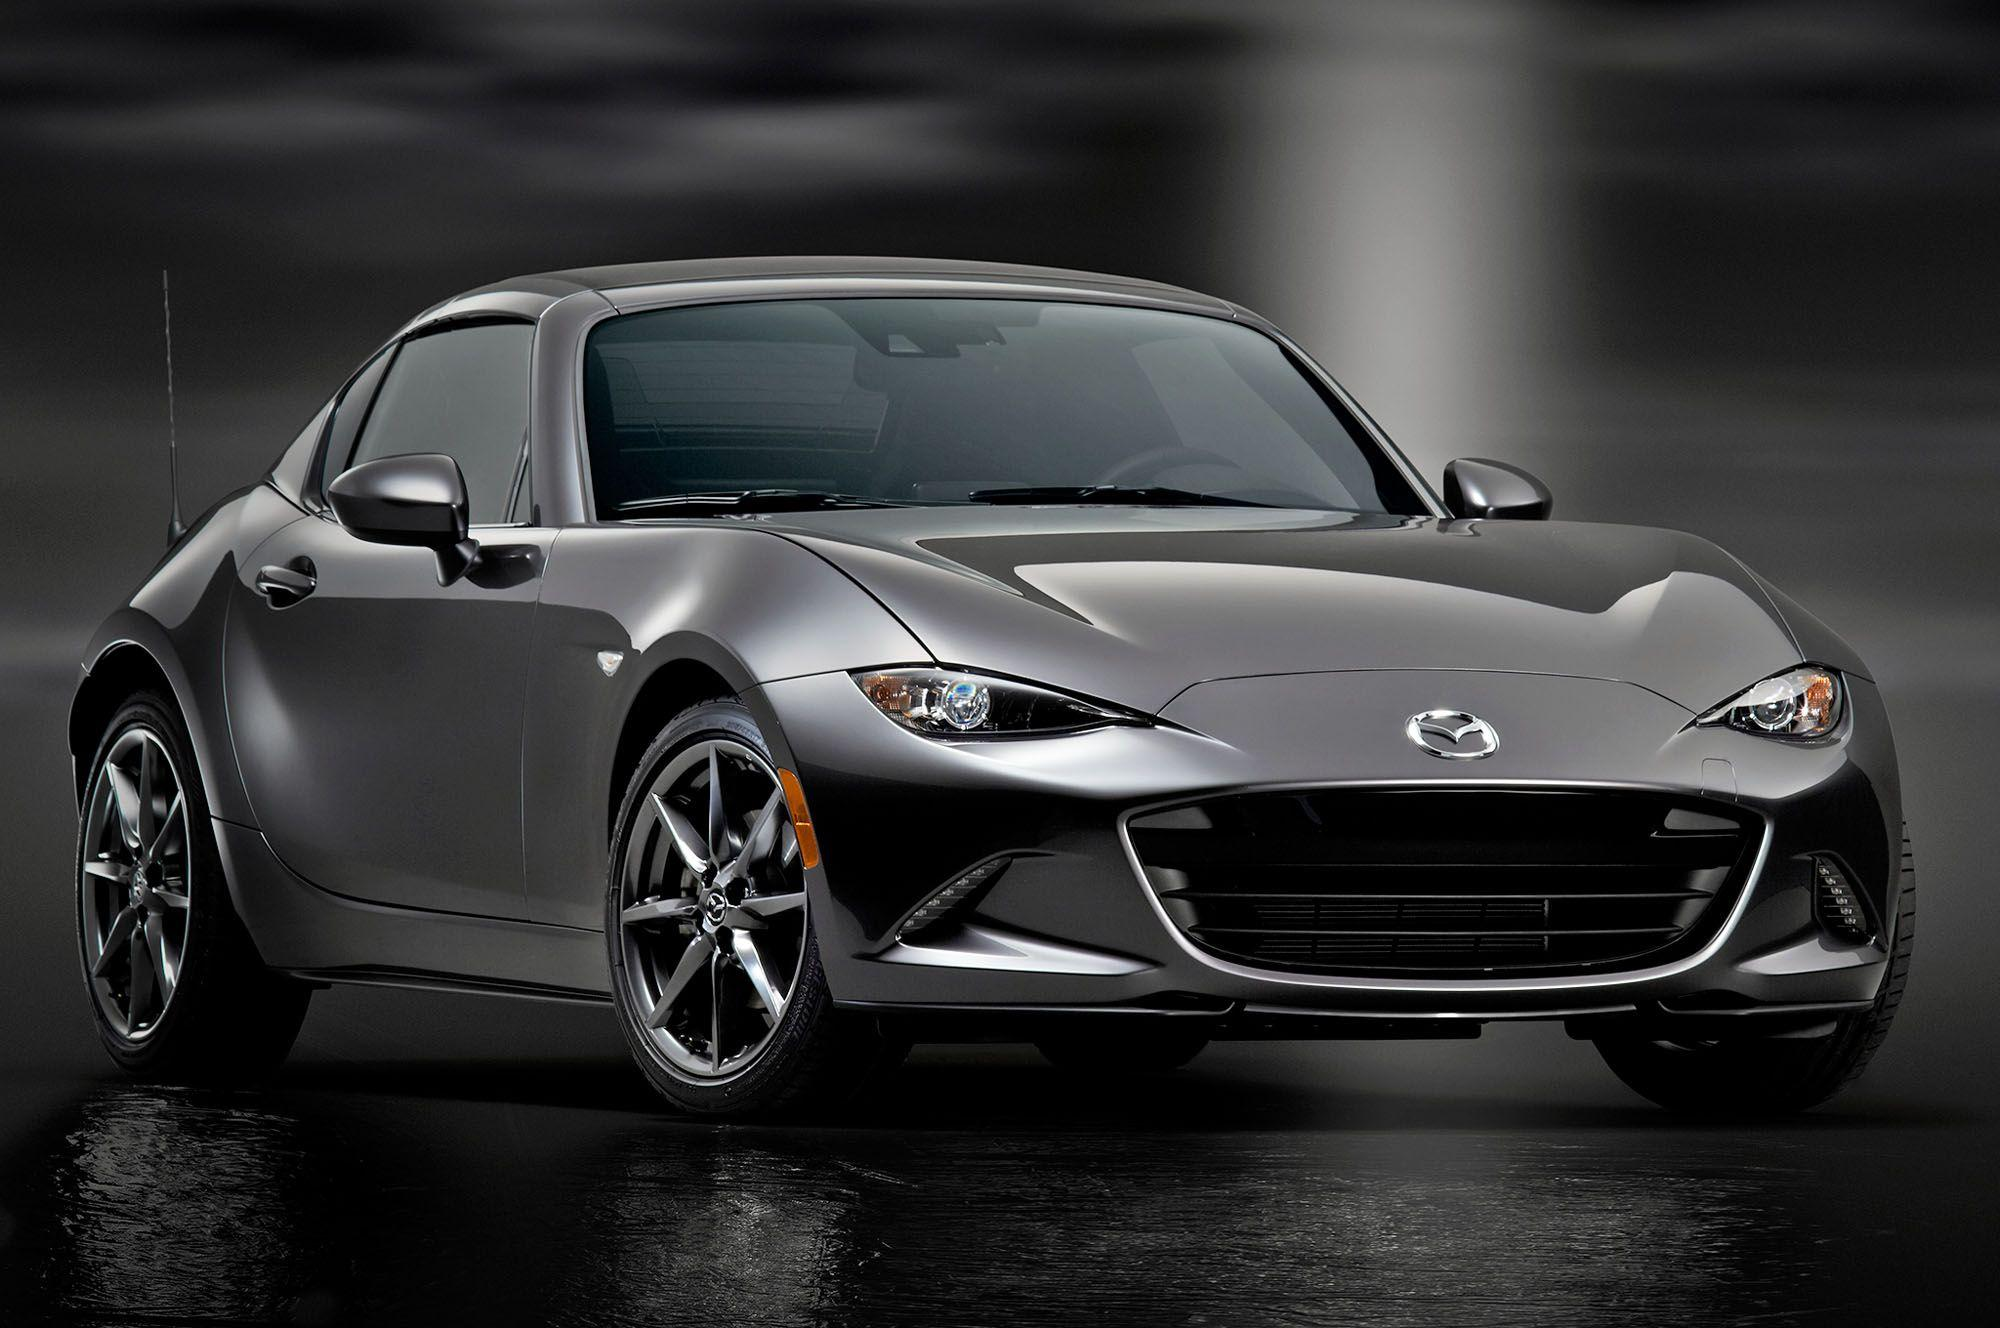 2017 Mazda MX-5 Miata RF Wallpaper | HD Car Wallpapers